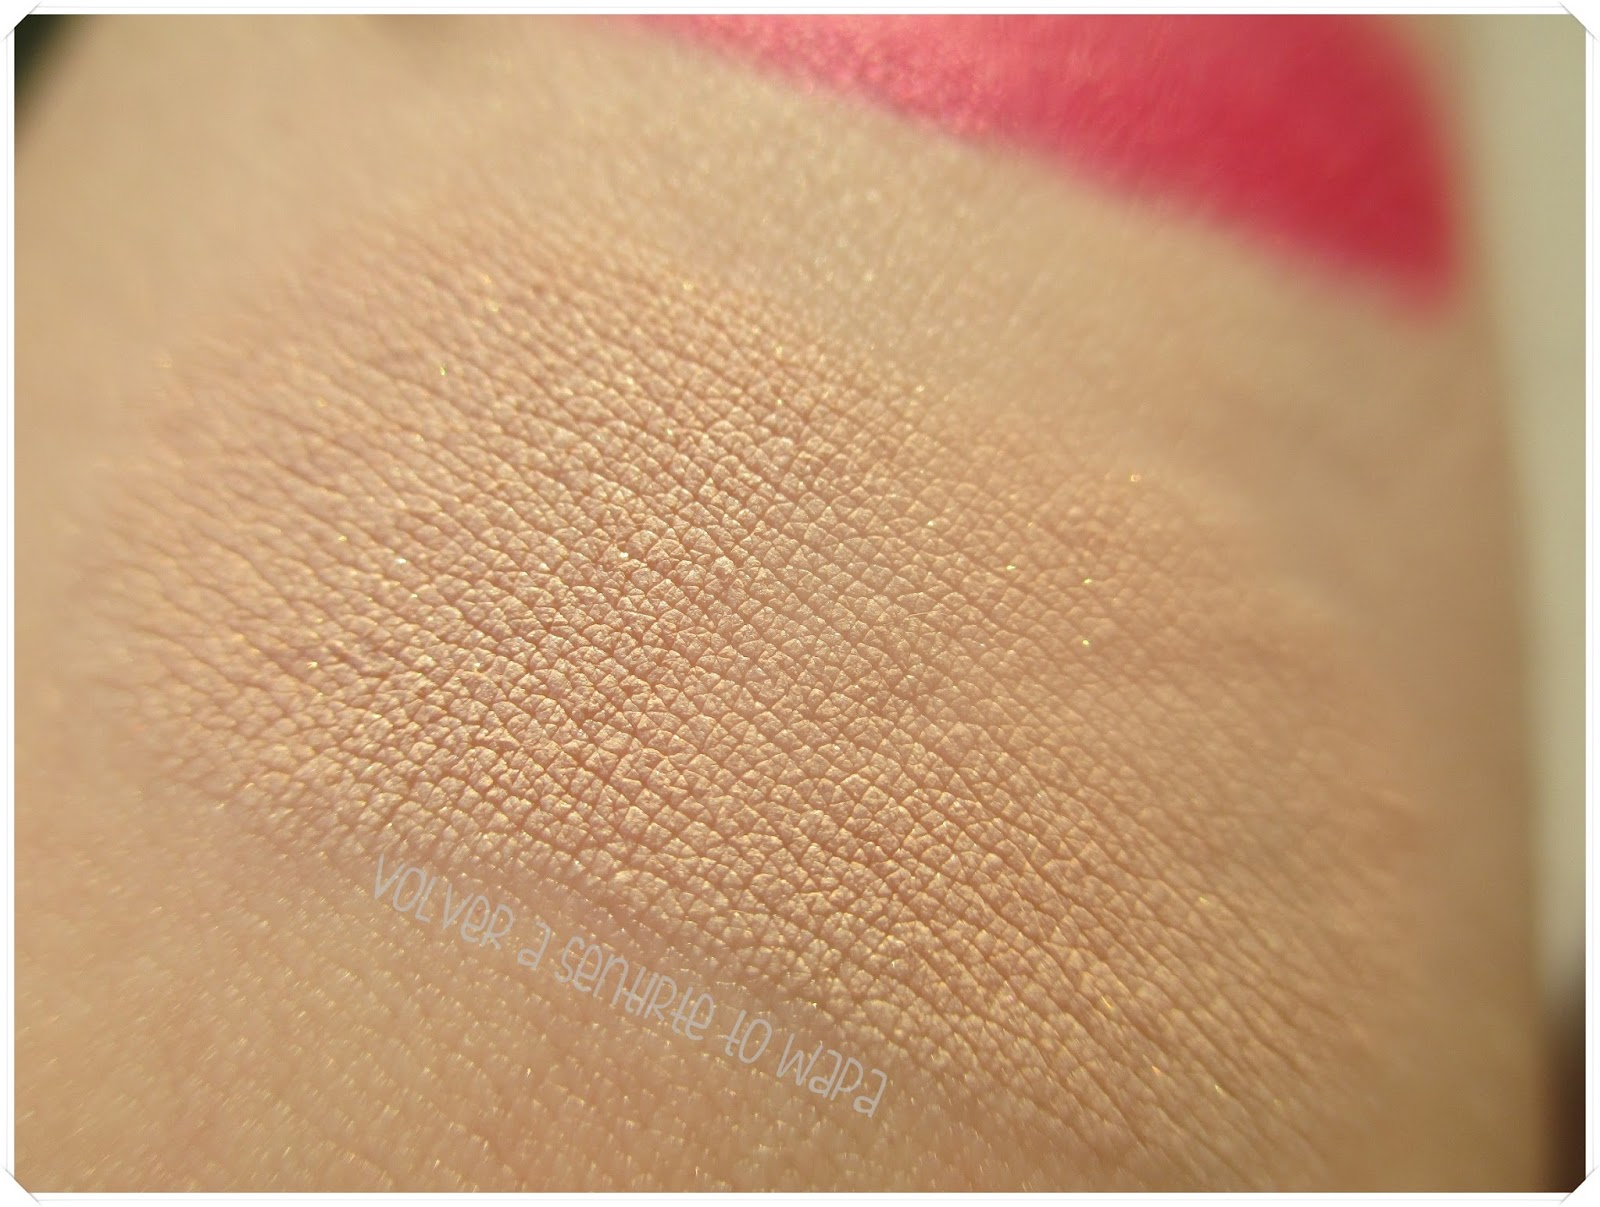 LONG LASTING de KIKO {Review & Swatches} - 28 International Bight Ivory